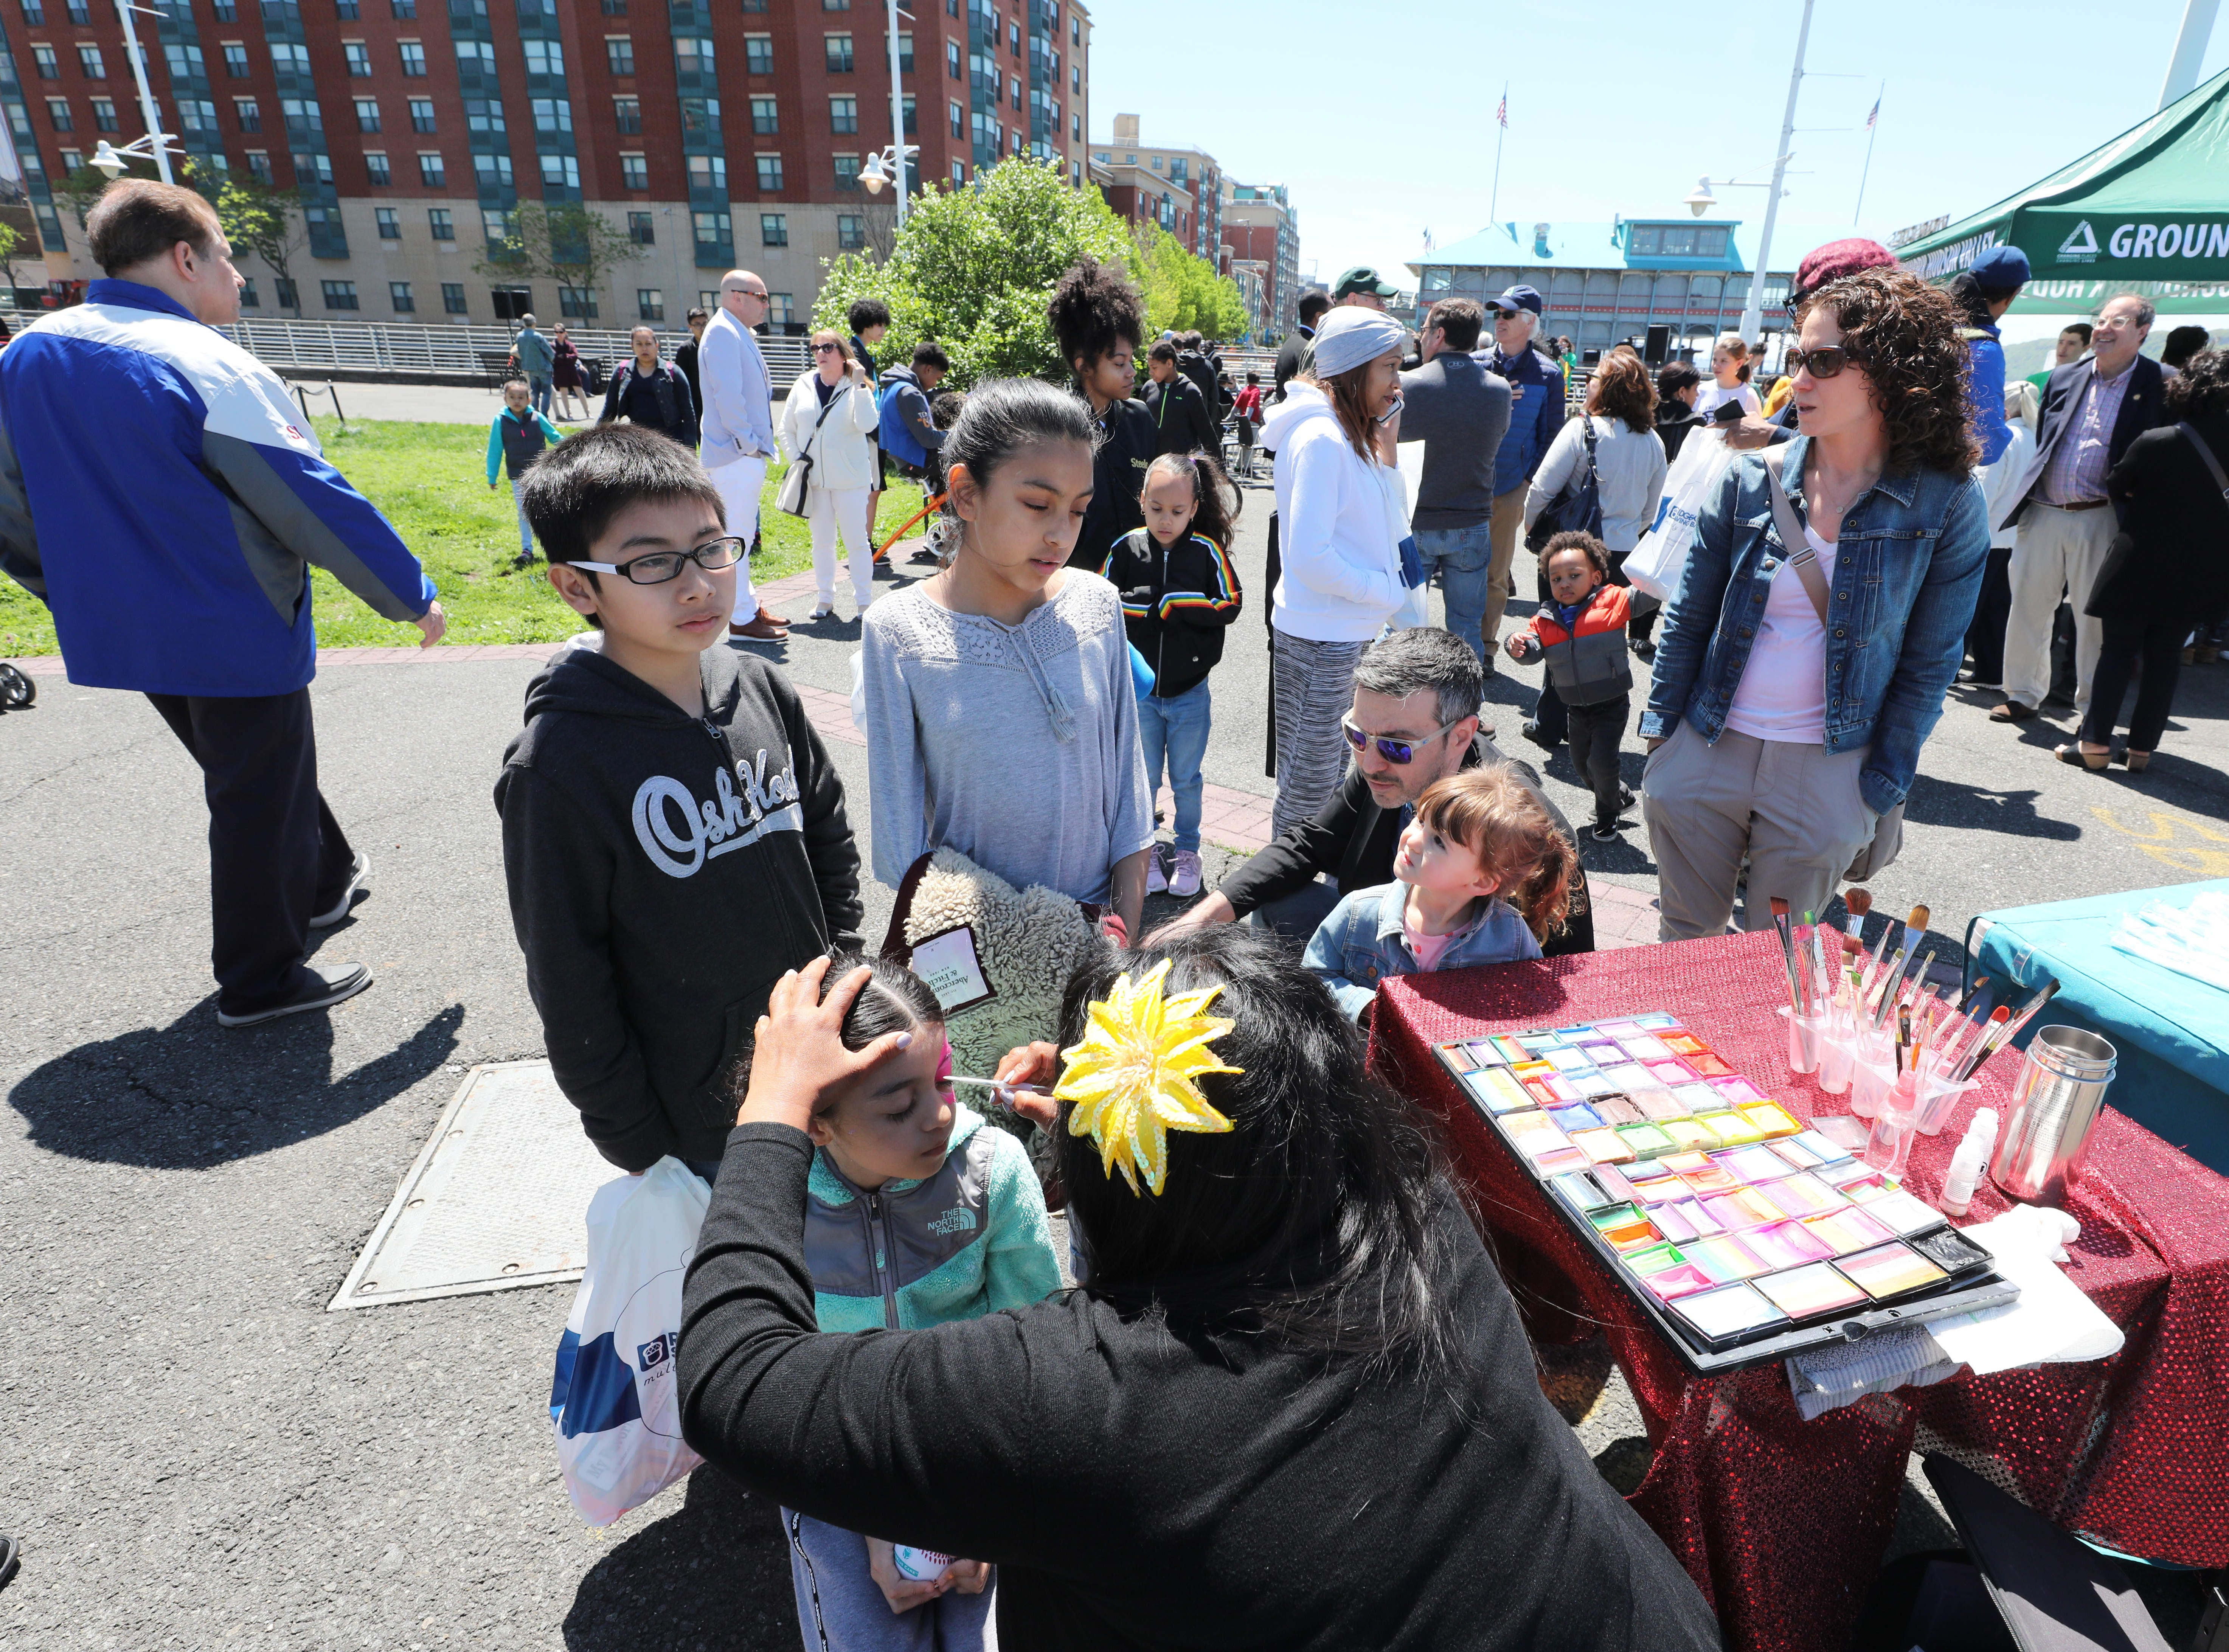 Kids have their faces painted during the 11th annual opening of the Science Barge  on the Hudson River in Yonkers, May 11, 2019. The floating environmental education center has undergone an almost $1million enhancement, completed over the past two years.